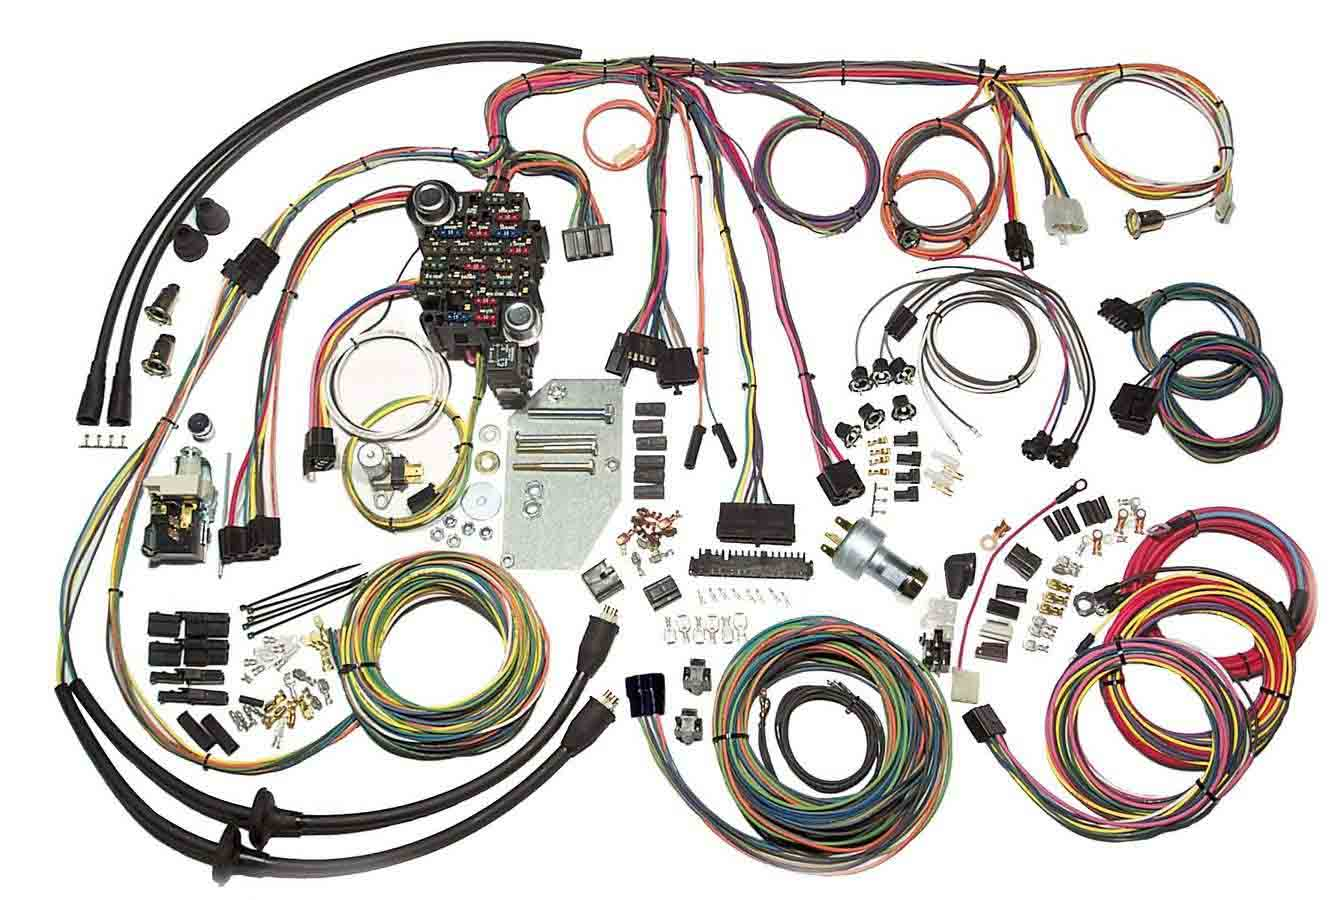 Grand Prix Auto Automotive Wire Harness Manufacturers Usa 55 56 Chevy Classic Update Wiring System